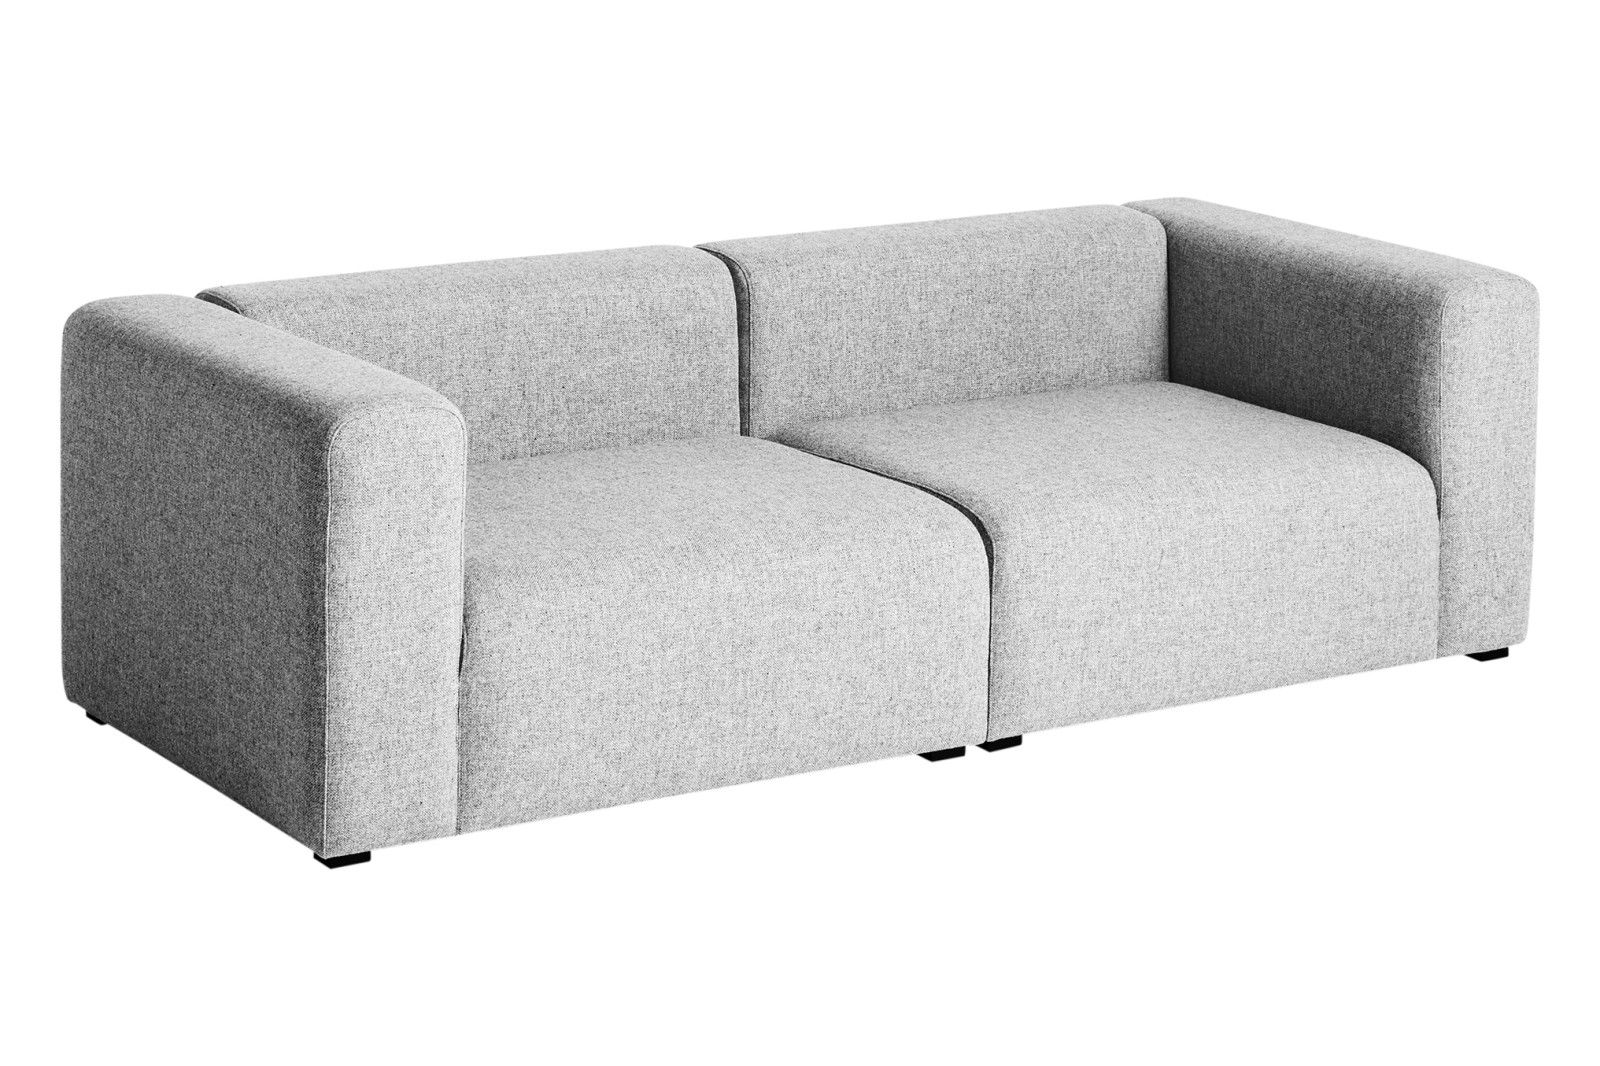 Mags 2 5 Seater Sofa From Hay 5 Seater Sofa Sofa Fabric Sofa